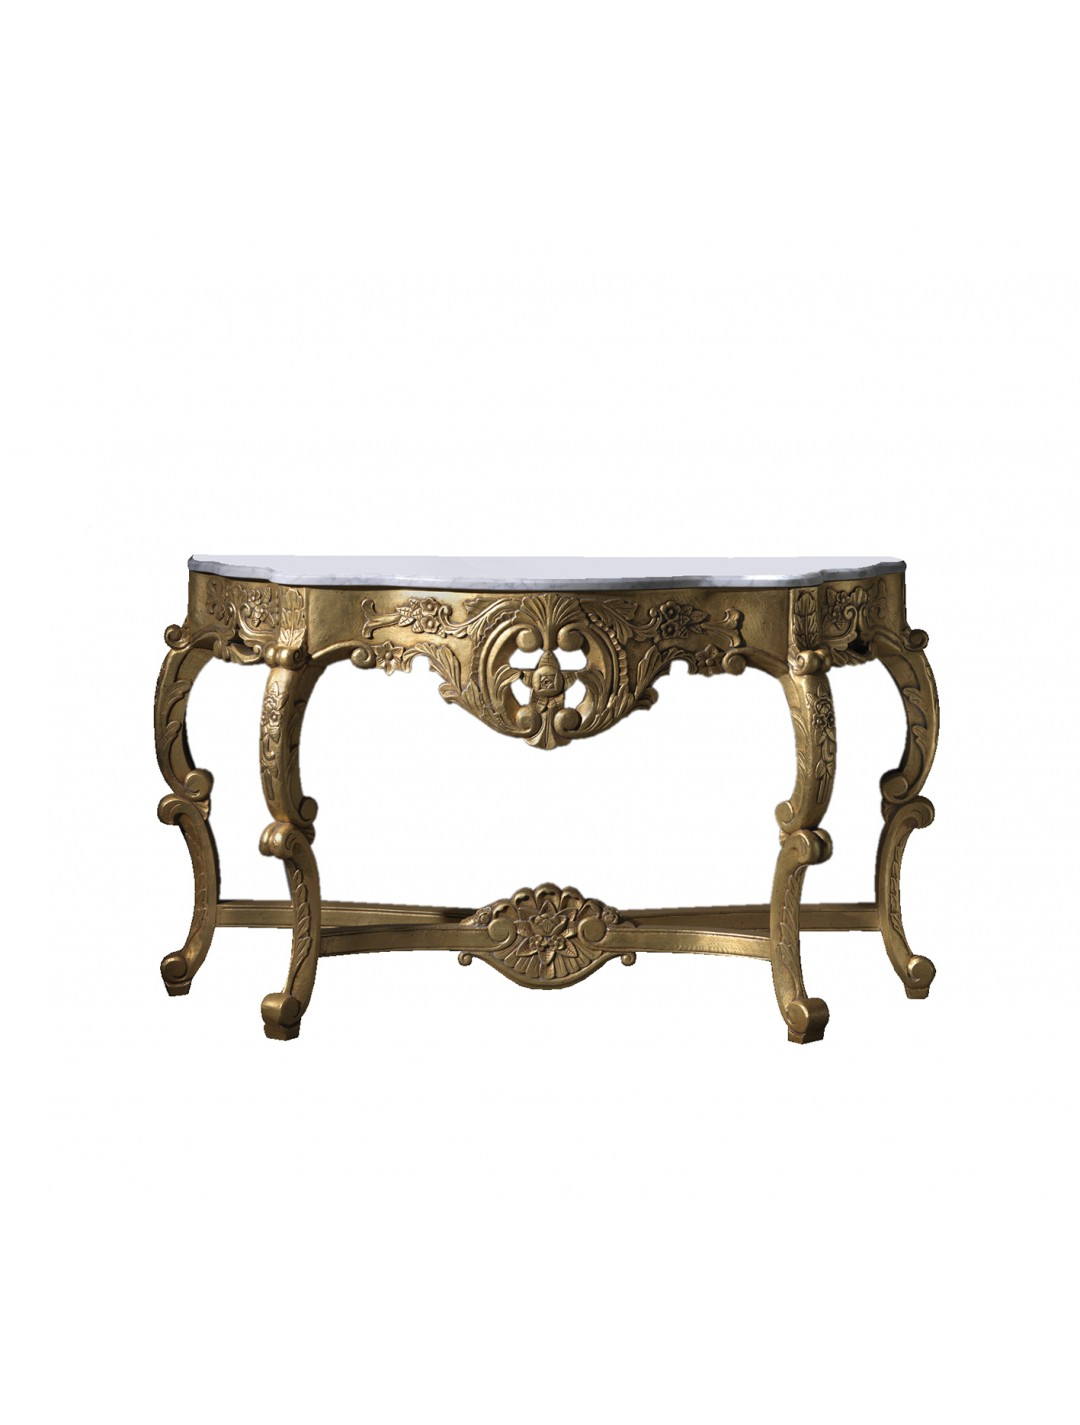 ISABEL CARVED WOOD CONSOLE